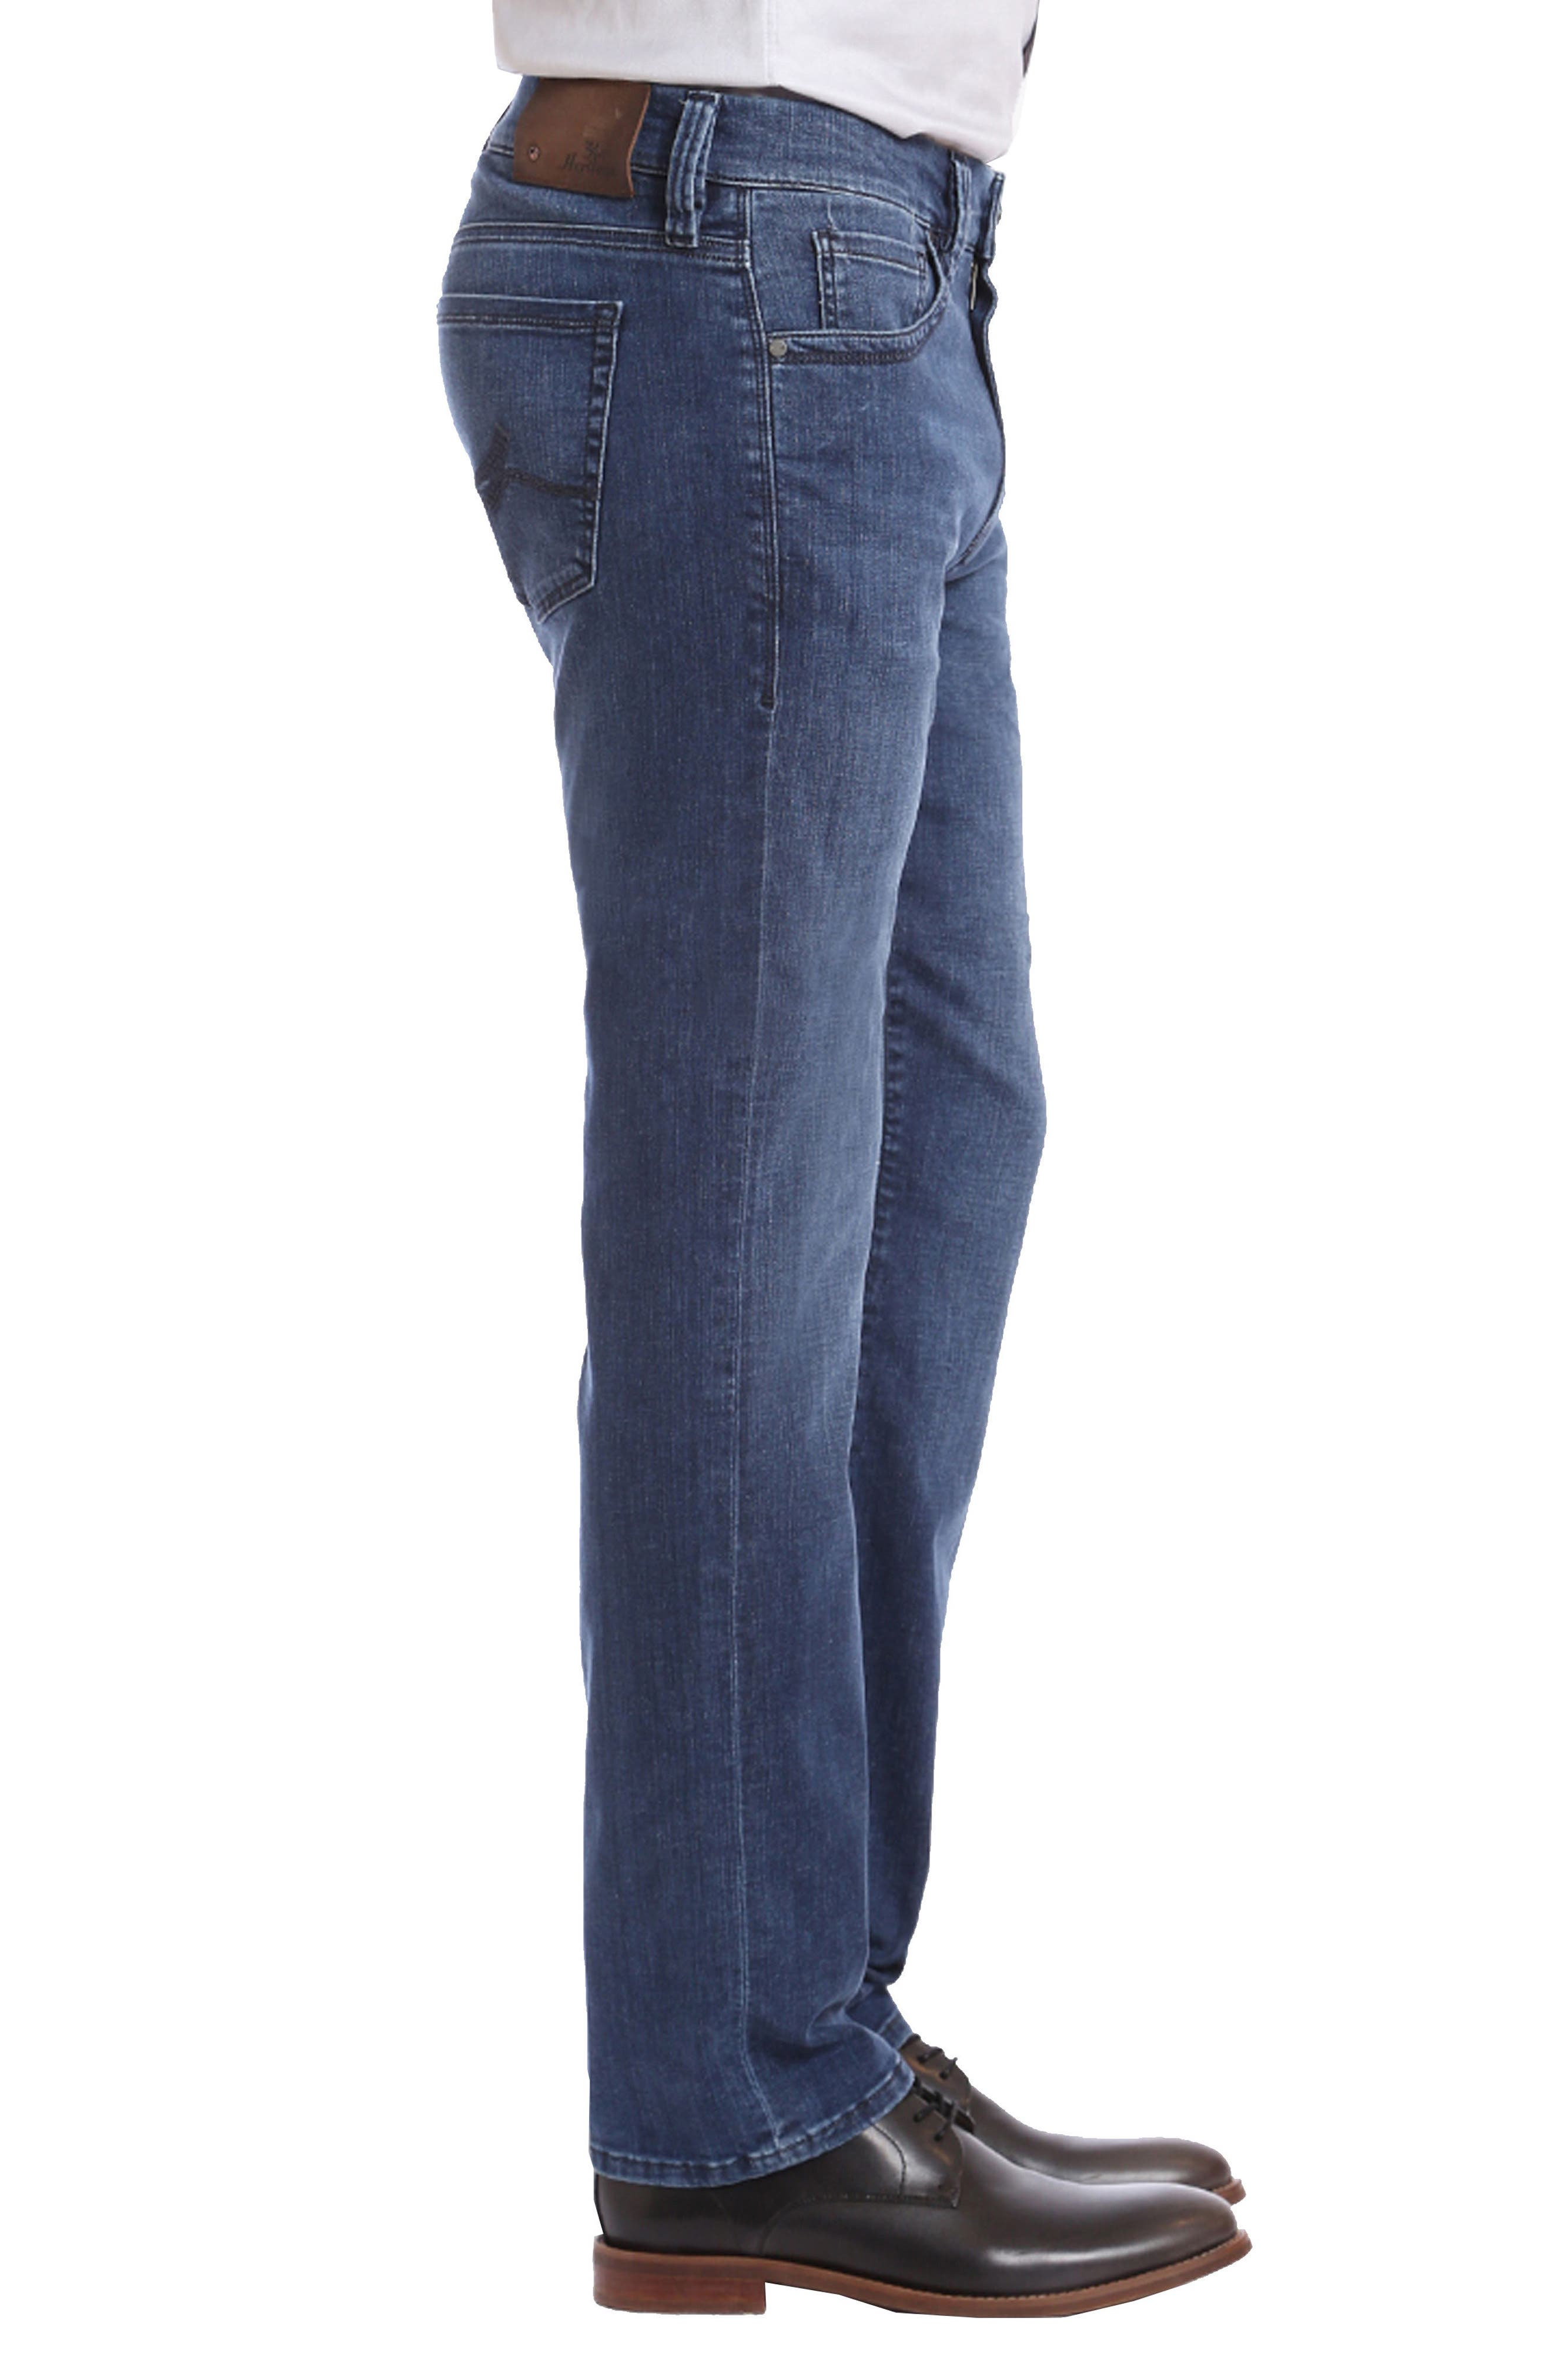 Courage Straight Fit Jeans,                             Alternate thumbnail 3, color,                             MID MILAN